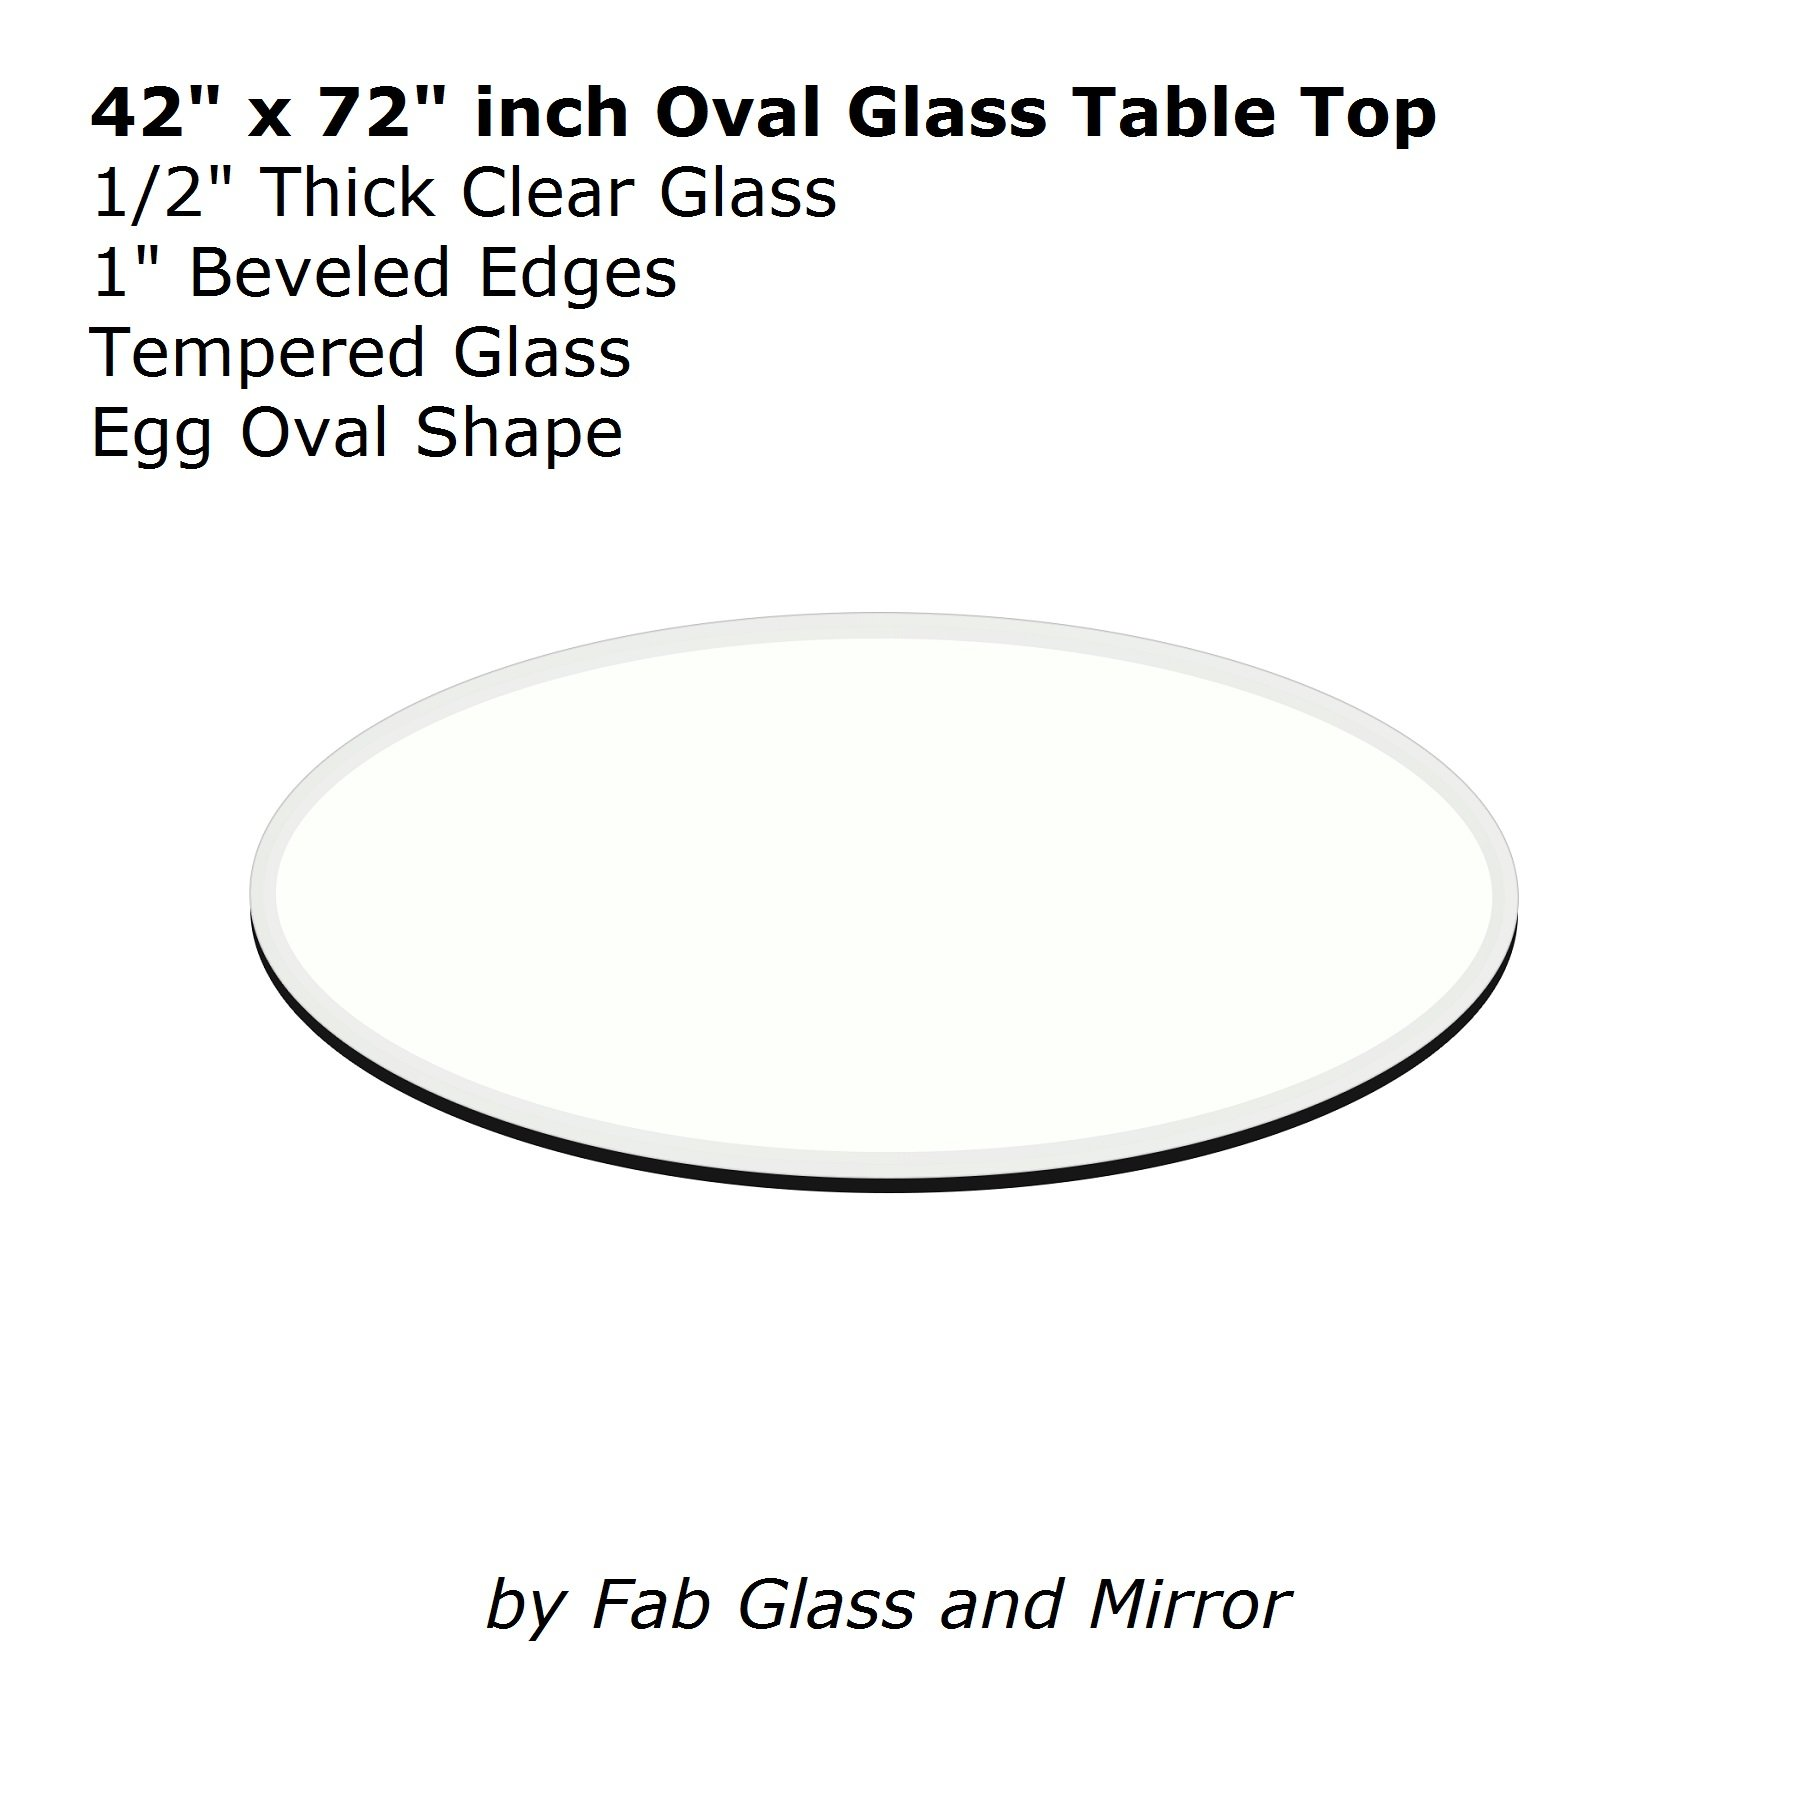 Fab Glass and Mirror E Oval (Egg) 1/2'' Thick 1'' Beveled Tempered Glass, 42'' L x 72'' W